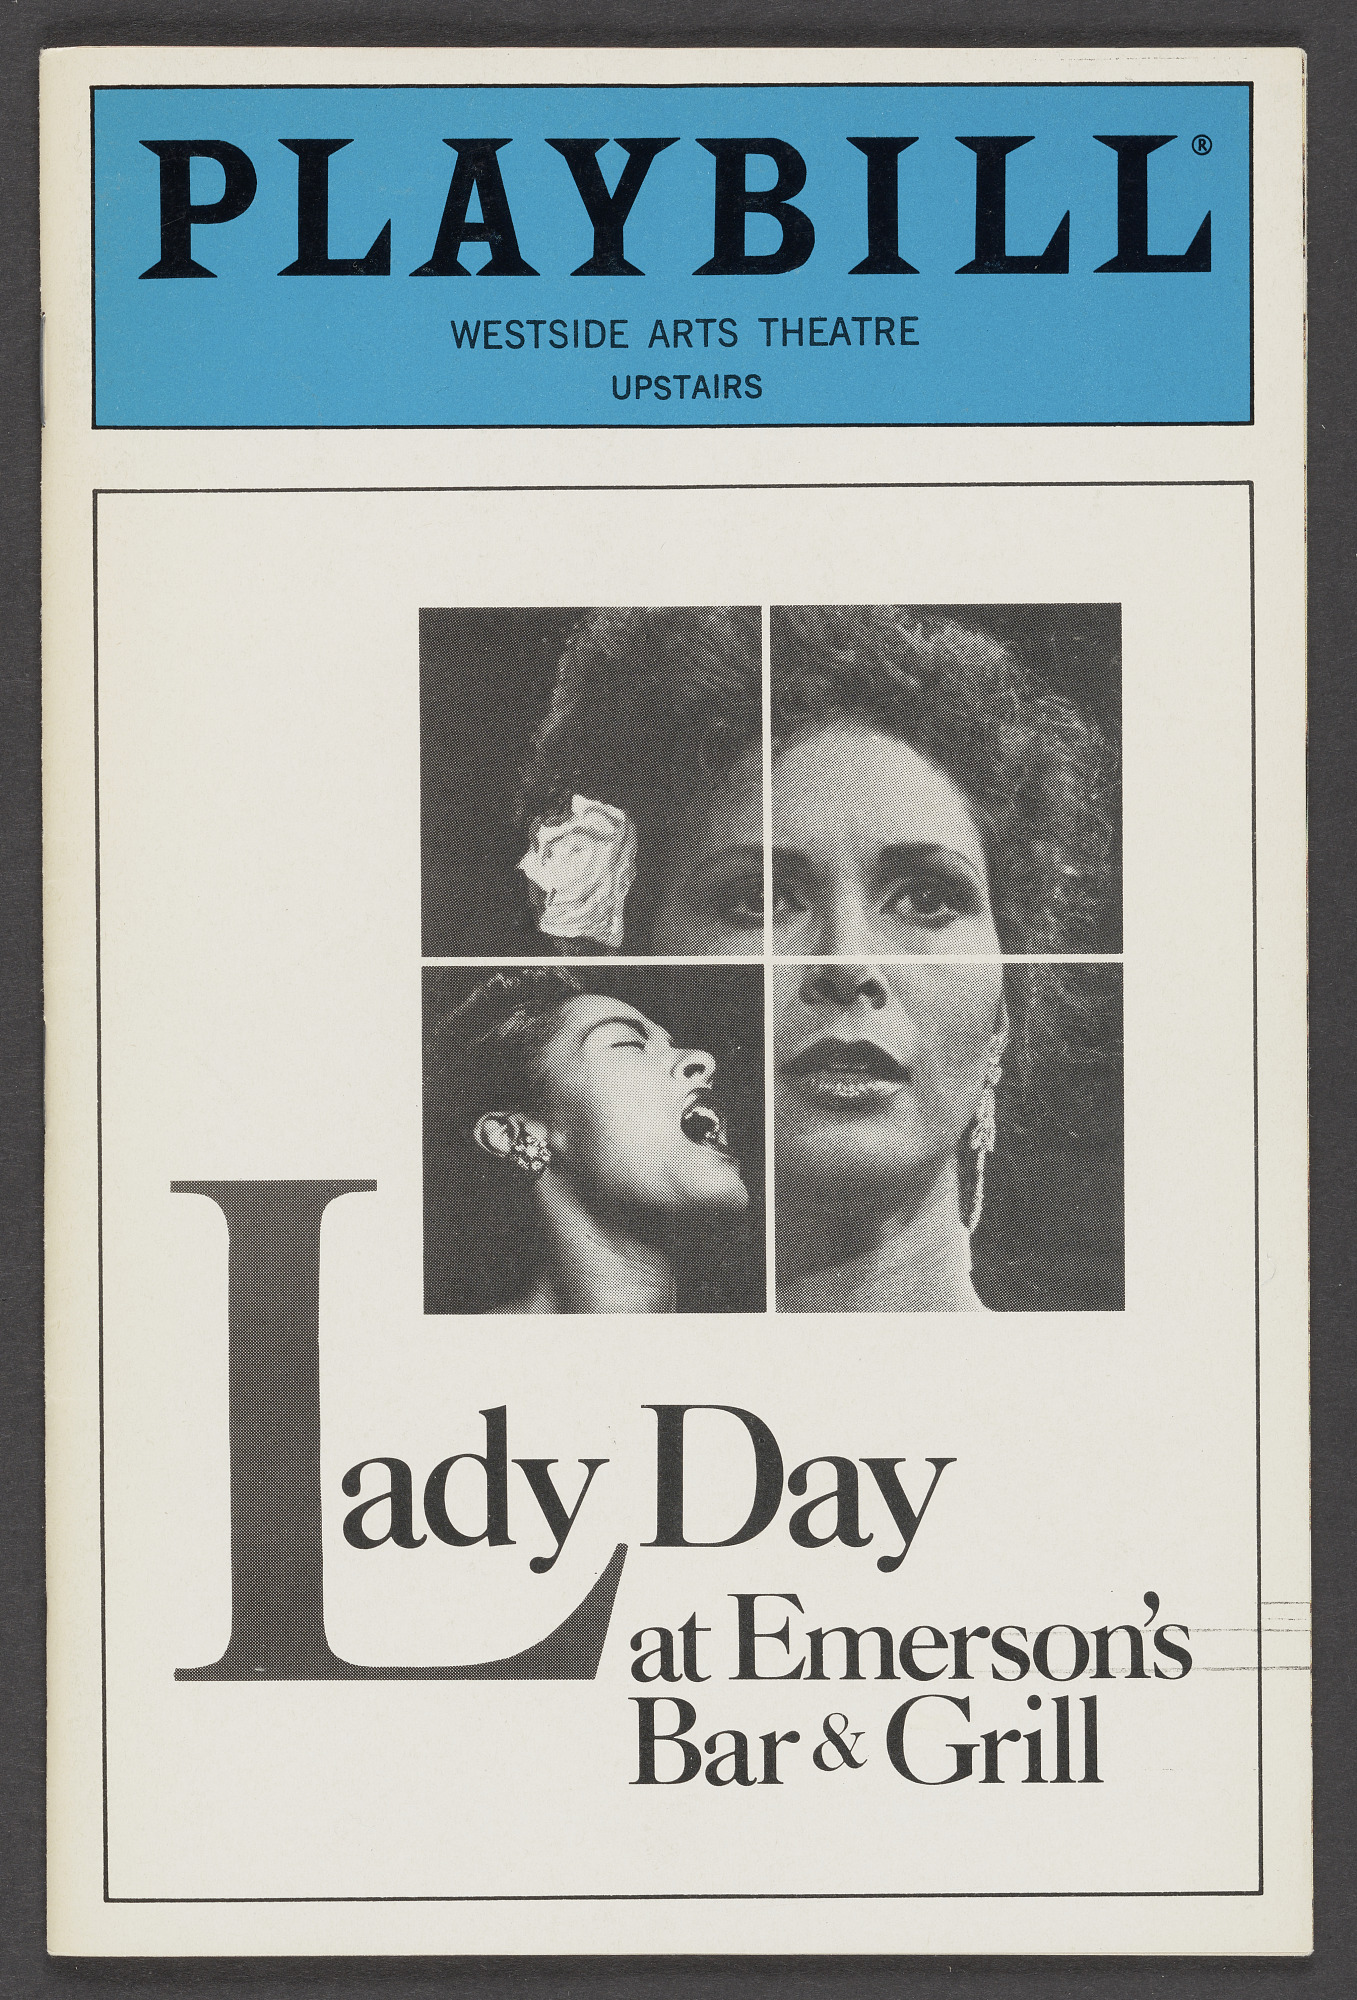 Image for Playbill for Lady Day at Emerson's Bar & Grill